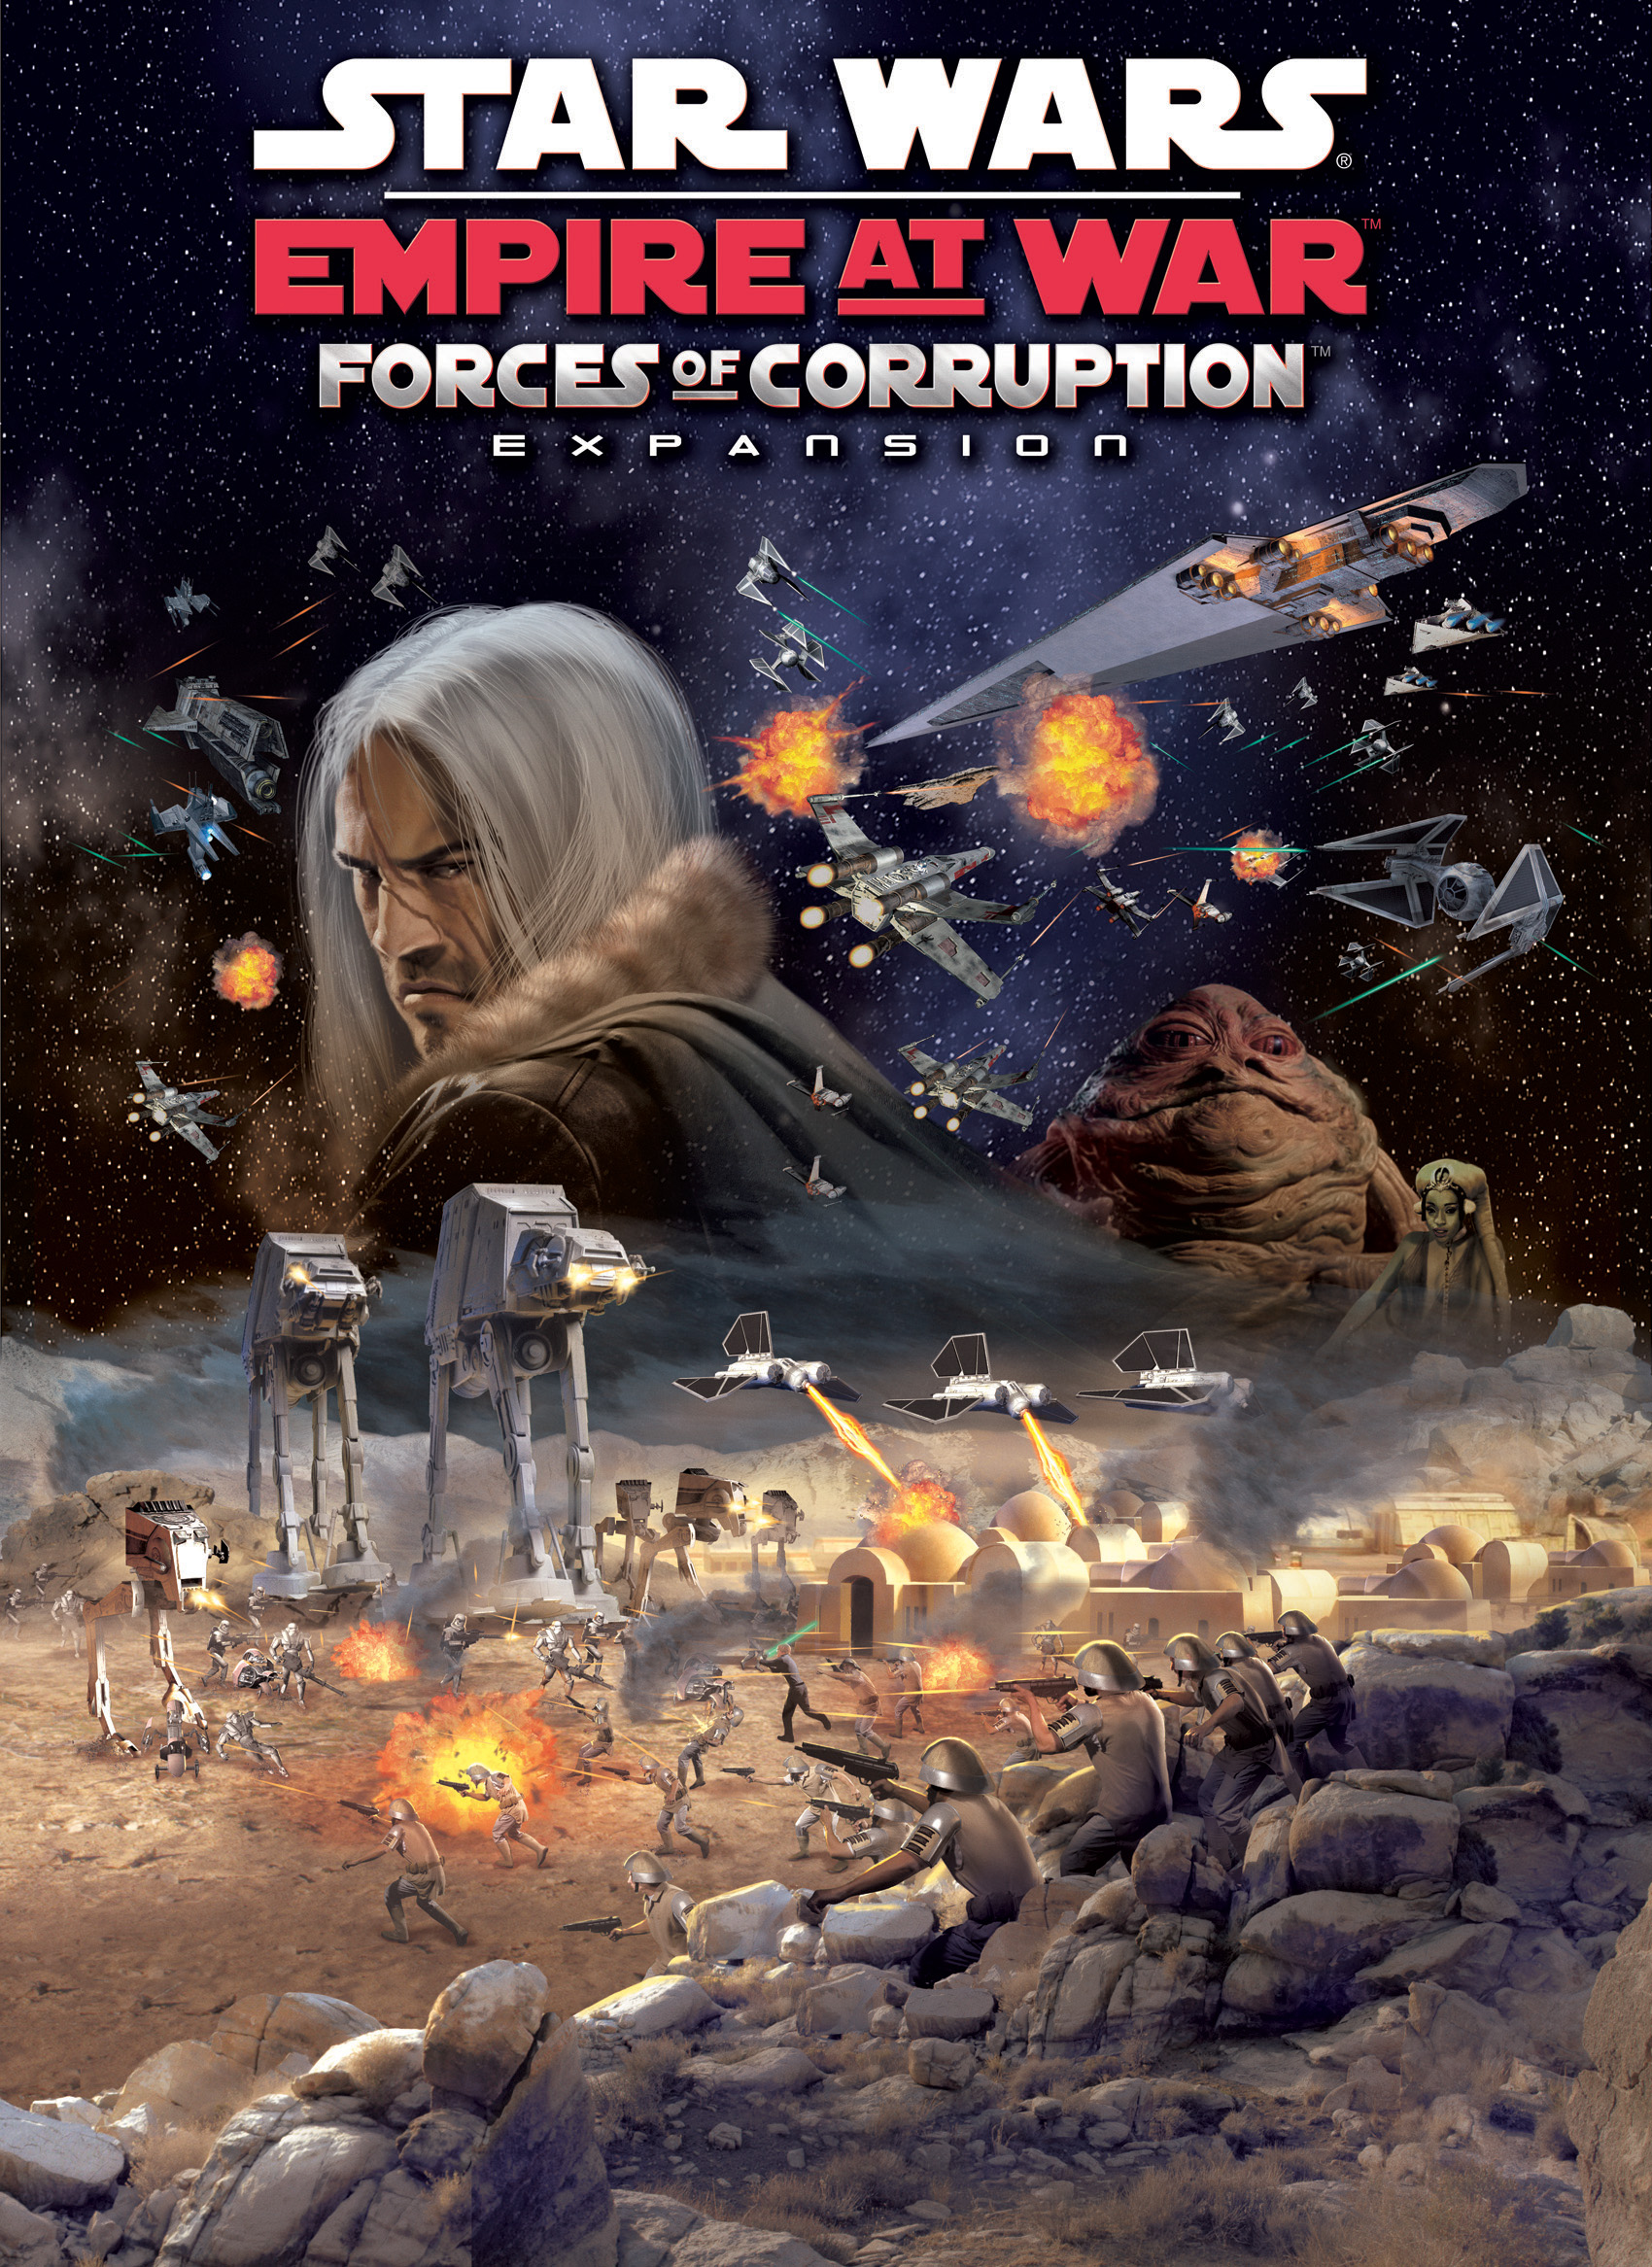 Star Wars: Empire at War: Forces of Corruption | Wookieepedia